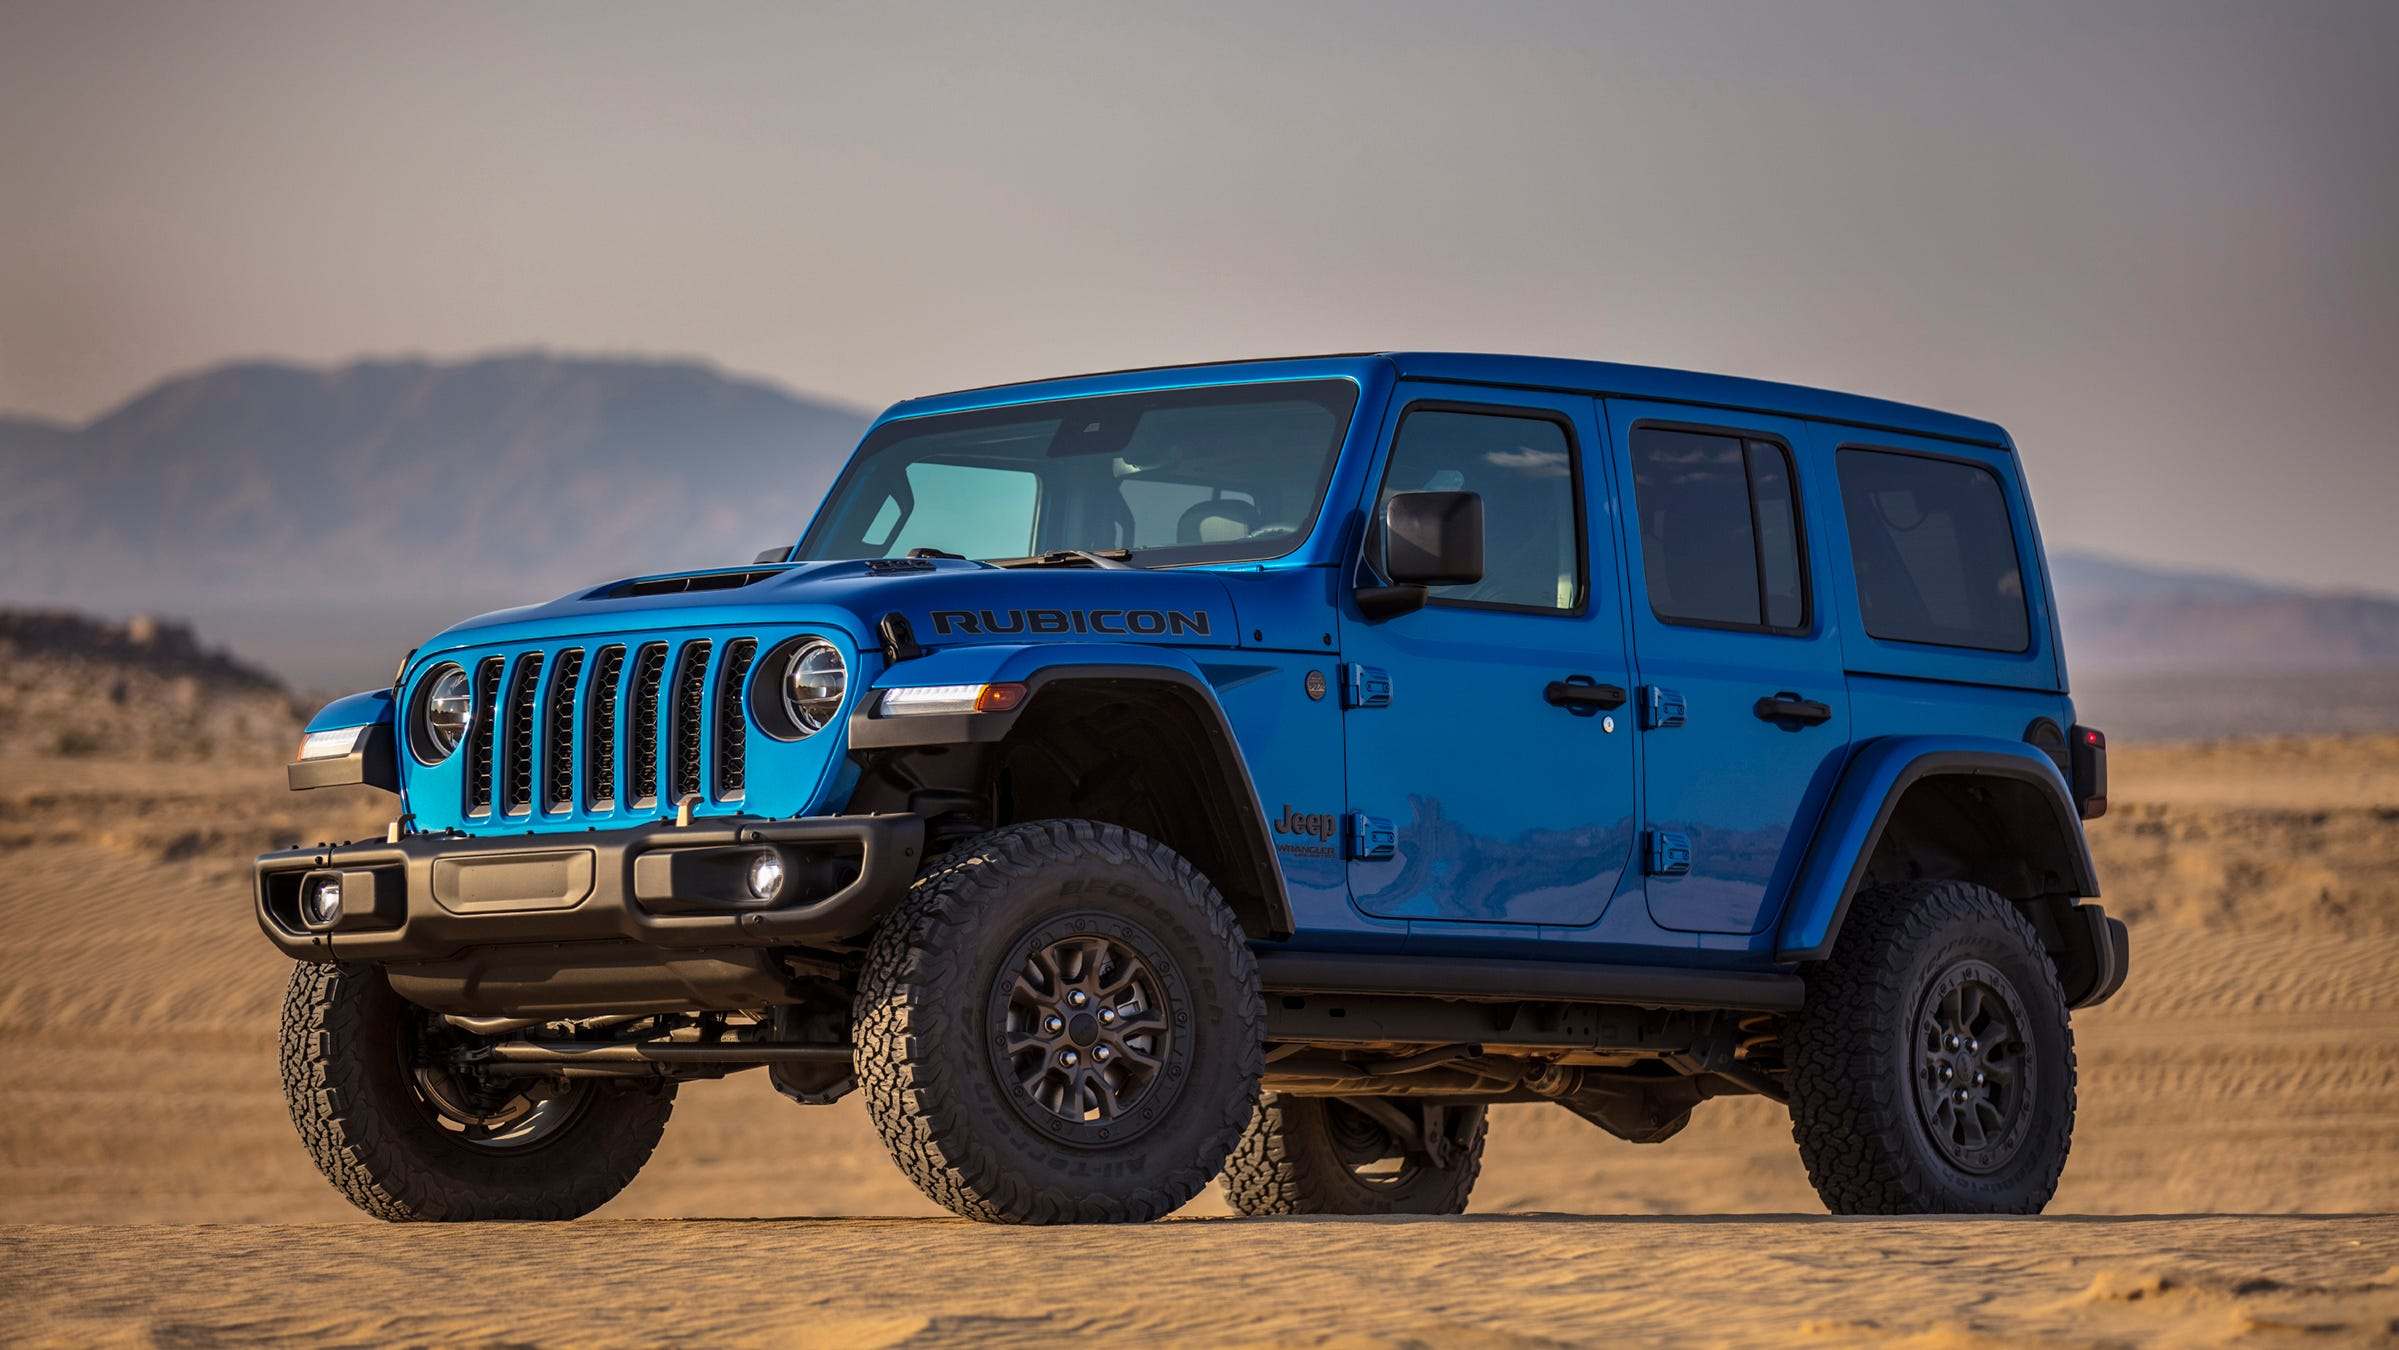 jeep, Suv, 4x4, Truck, Offroad Wallpapers HD / Desktop and